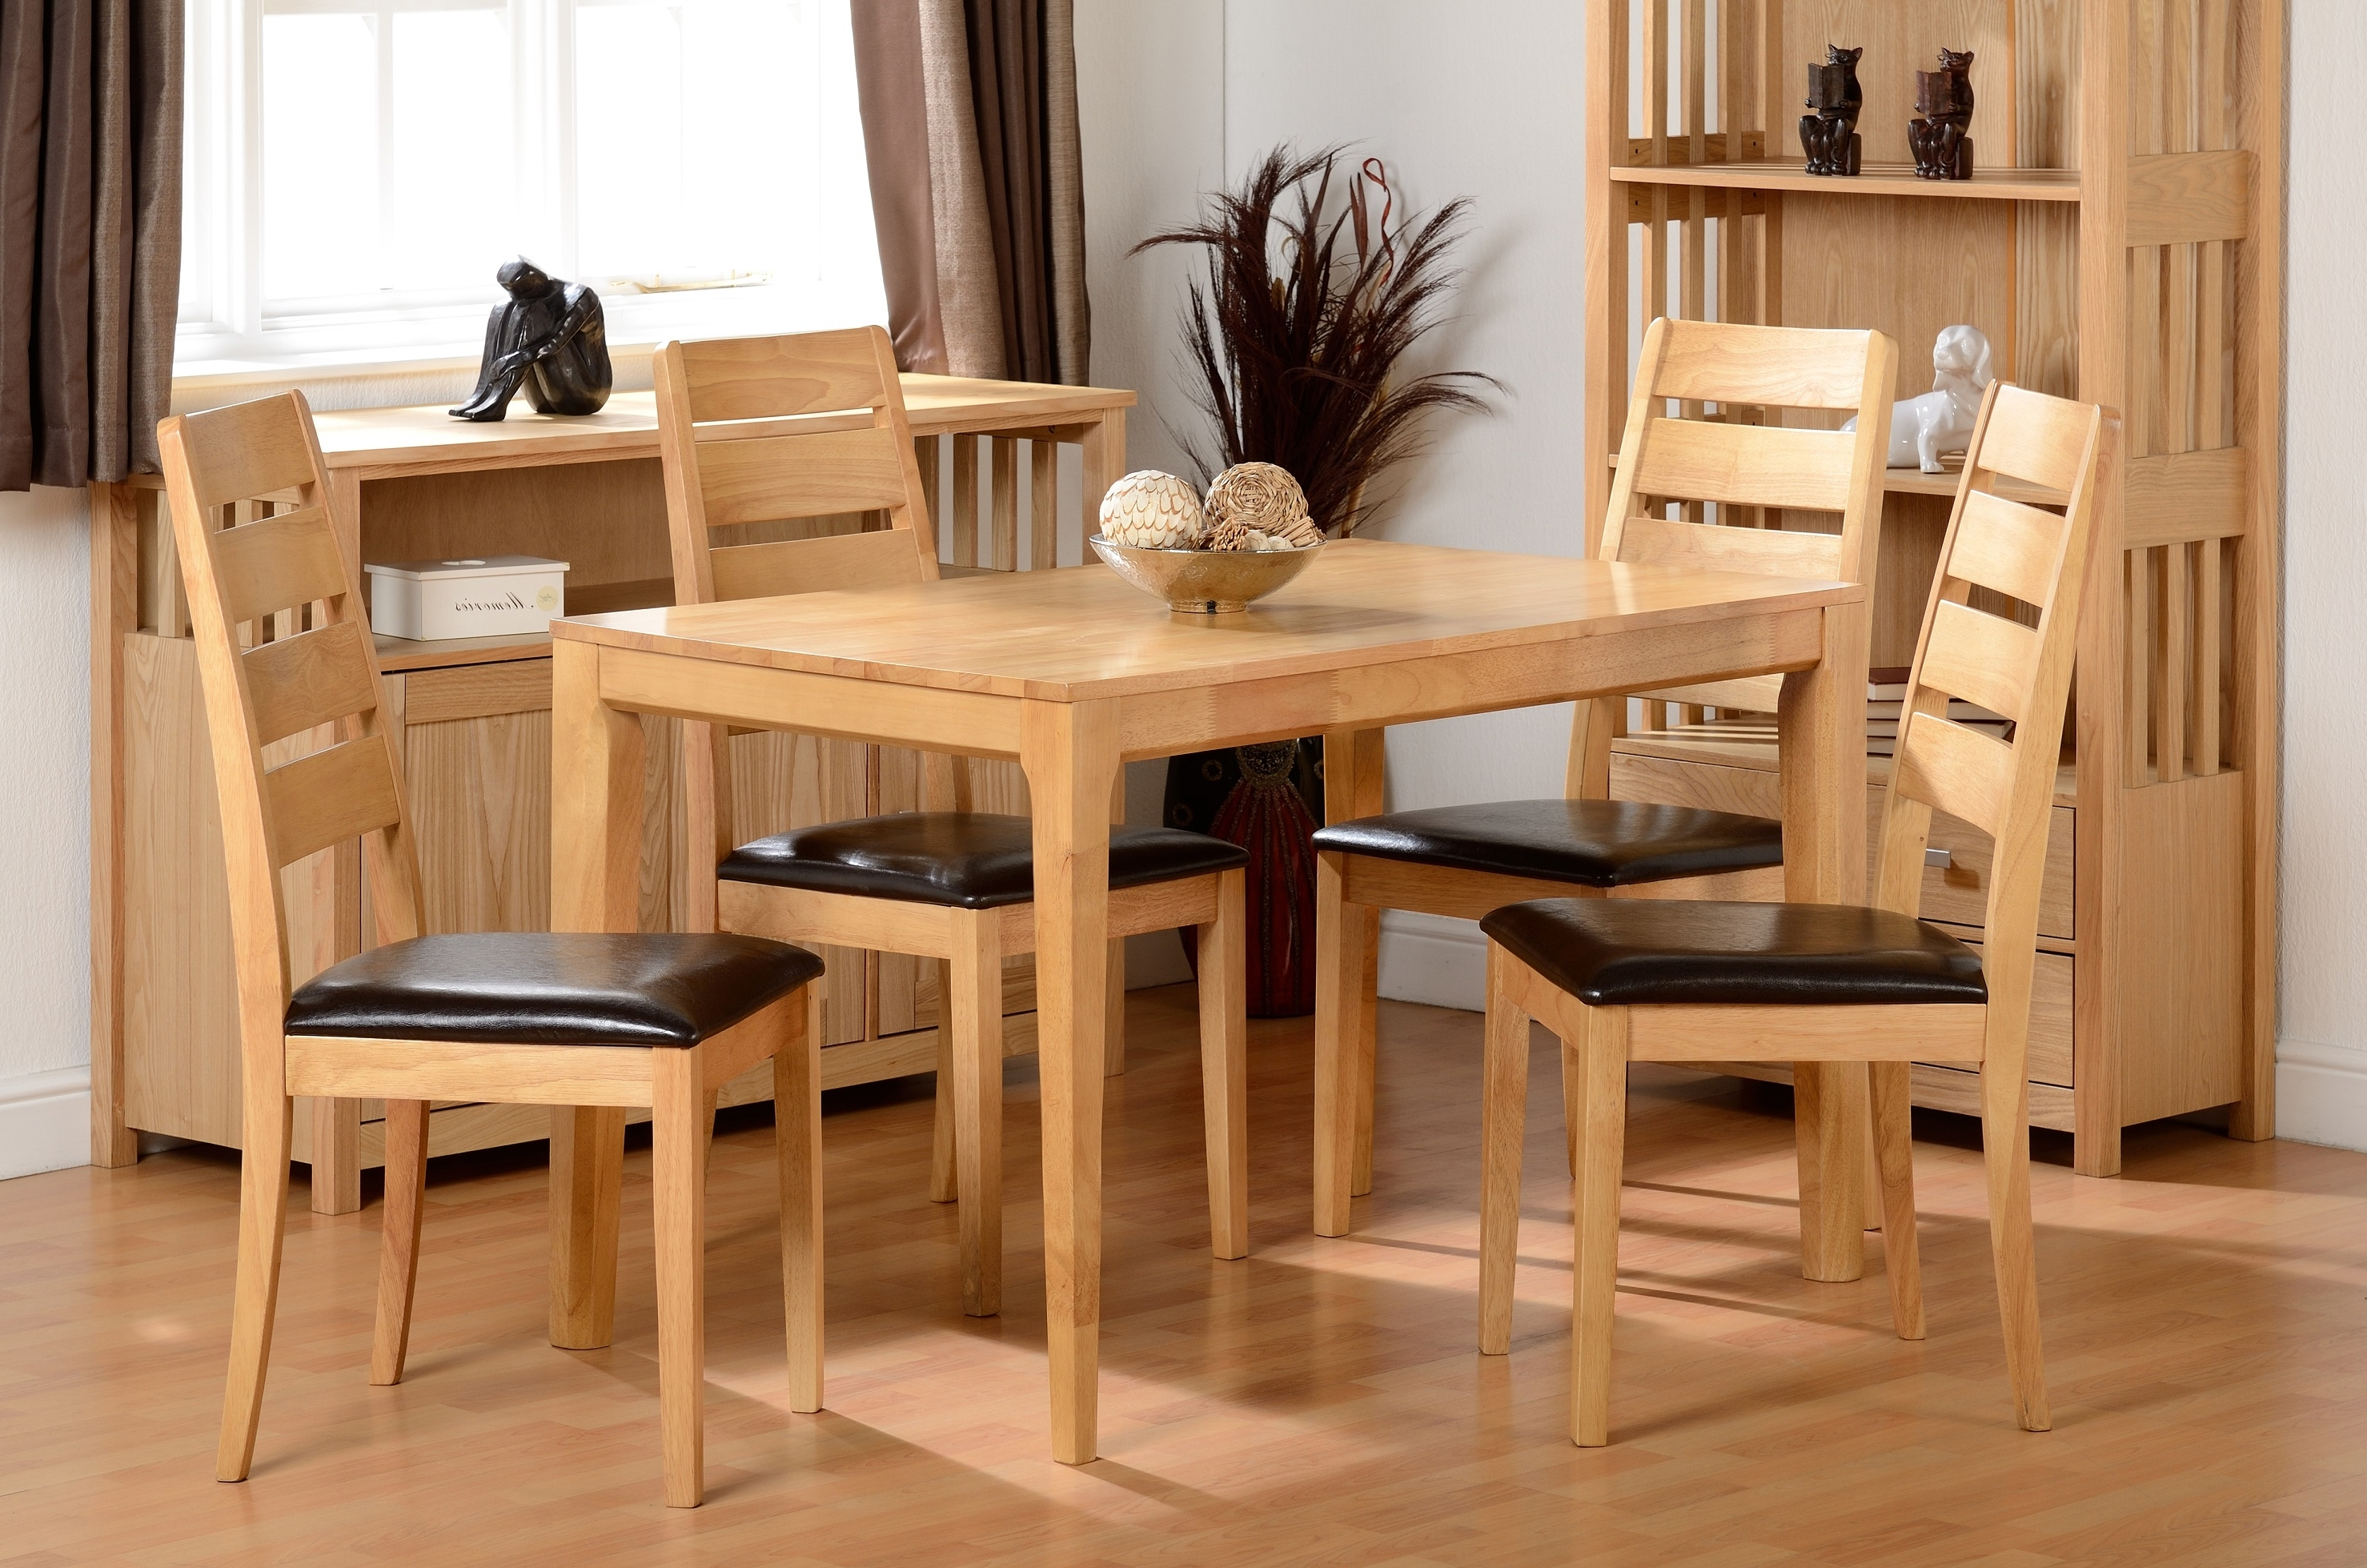 Best And Newest Essex Logan Dining Table & 4 Chairs – Offersbargains Regarding Logan Dining Tables (View 19 of 25)